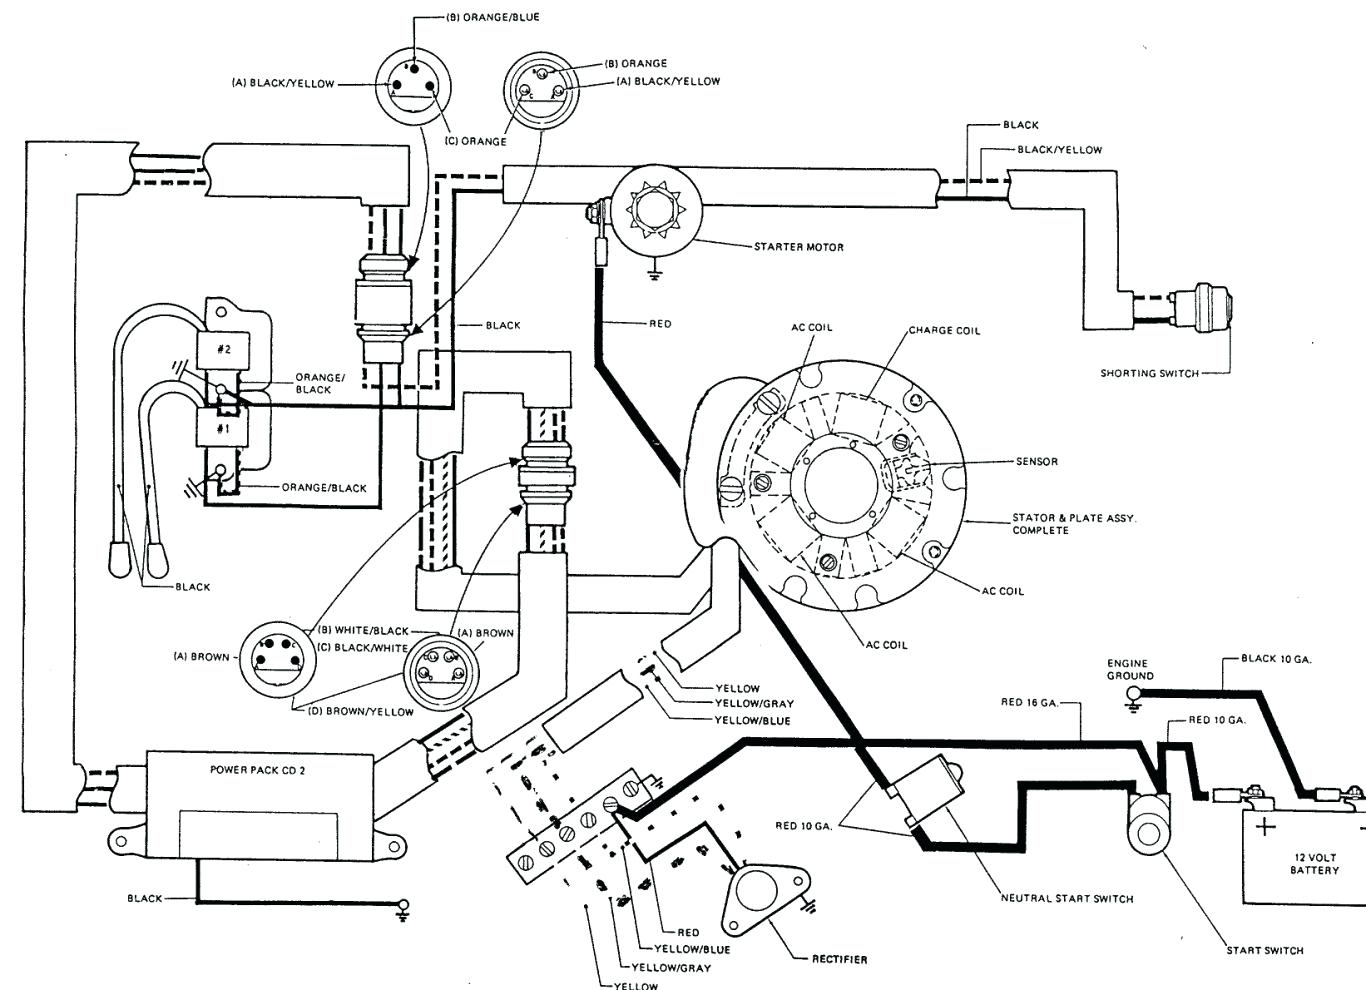 1978 ford electric choke wiring diagram auto electrical wiring diagram Dodge Electric Choke Wiring-Diagram 1978 ford electric choke wiring diagram